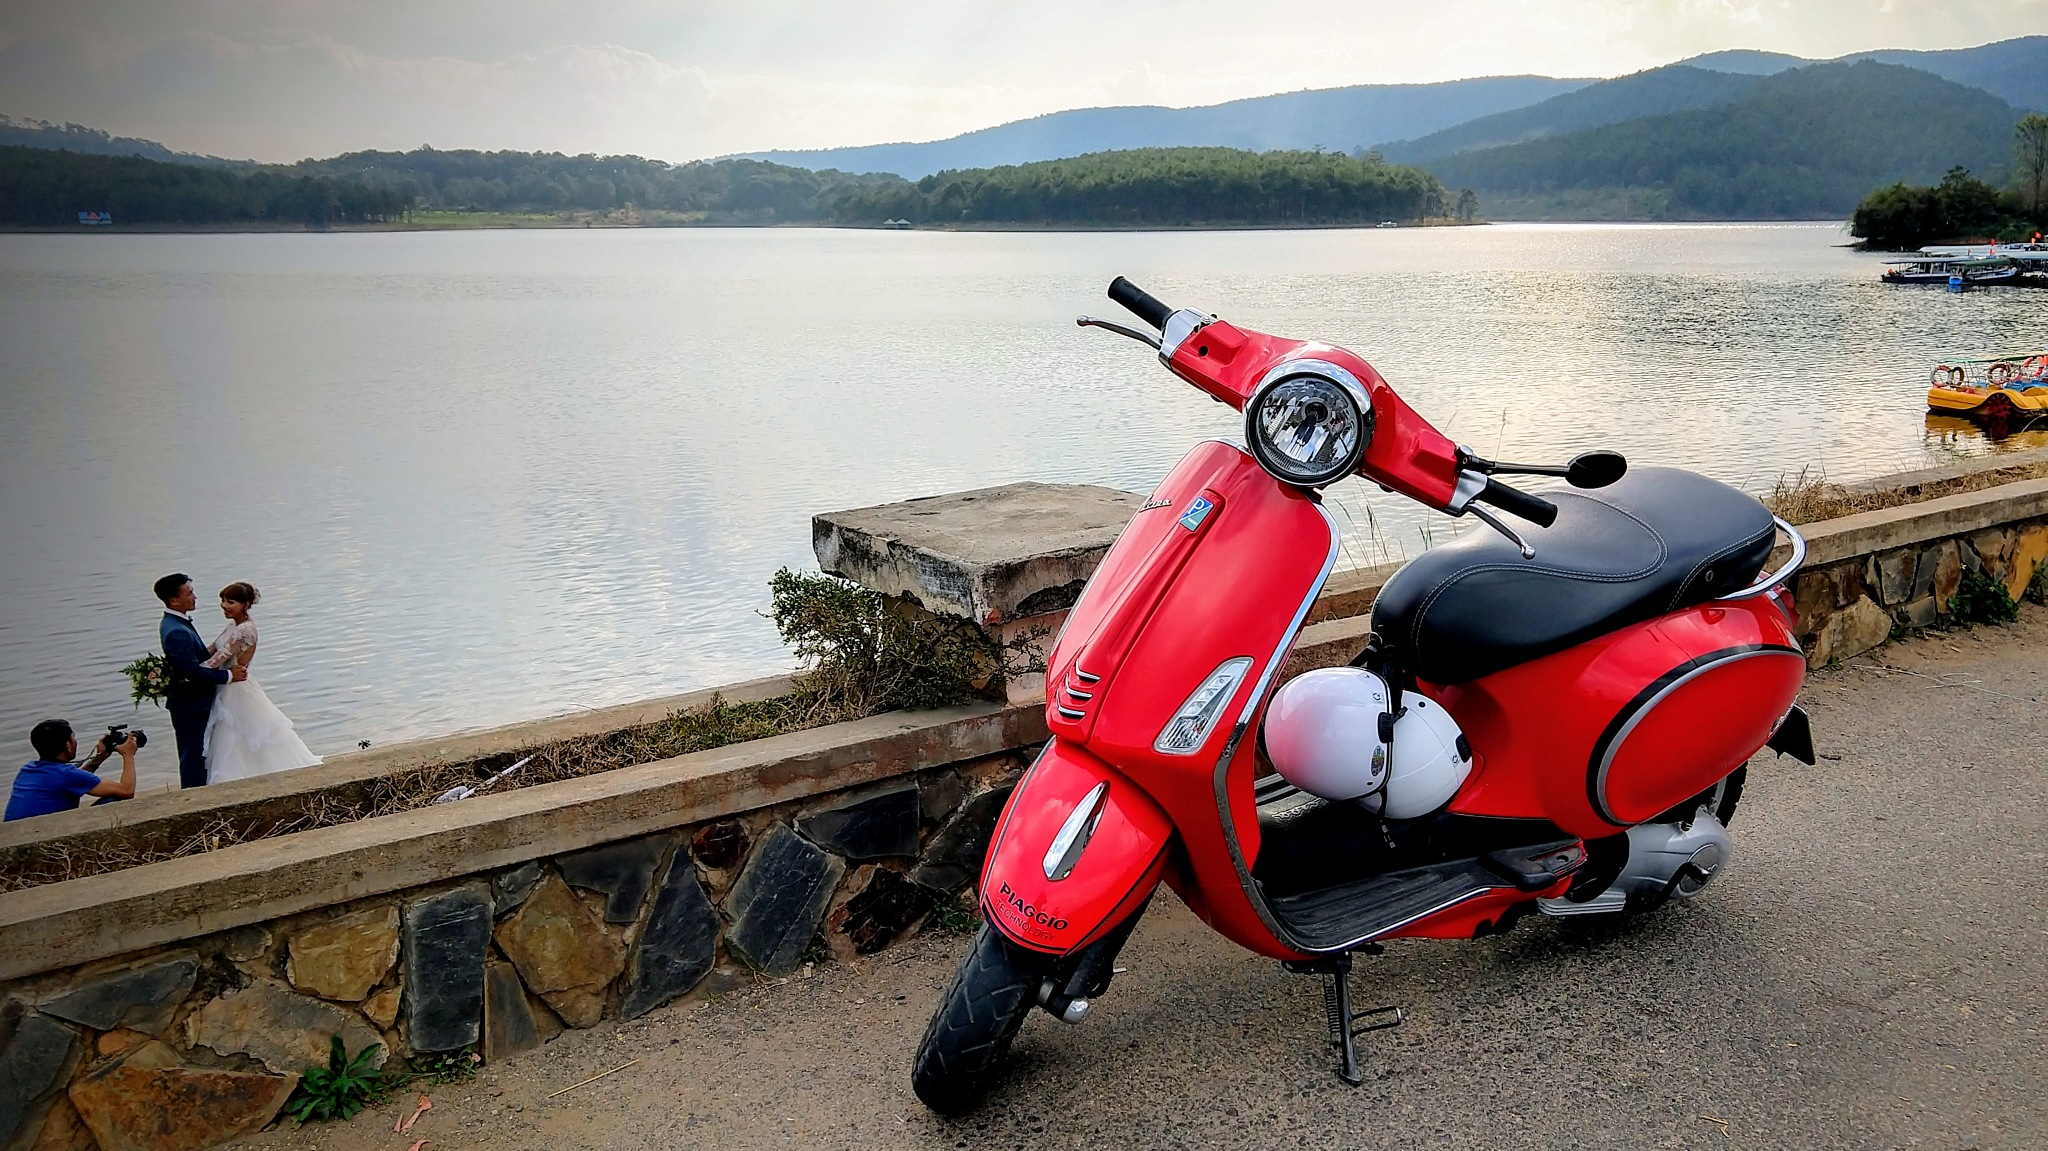 The red moped by Tom P.